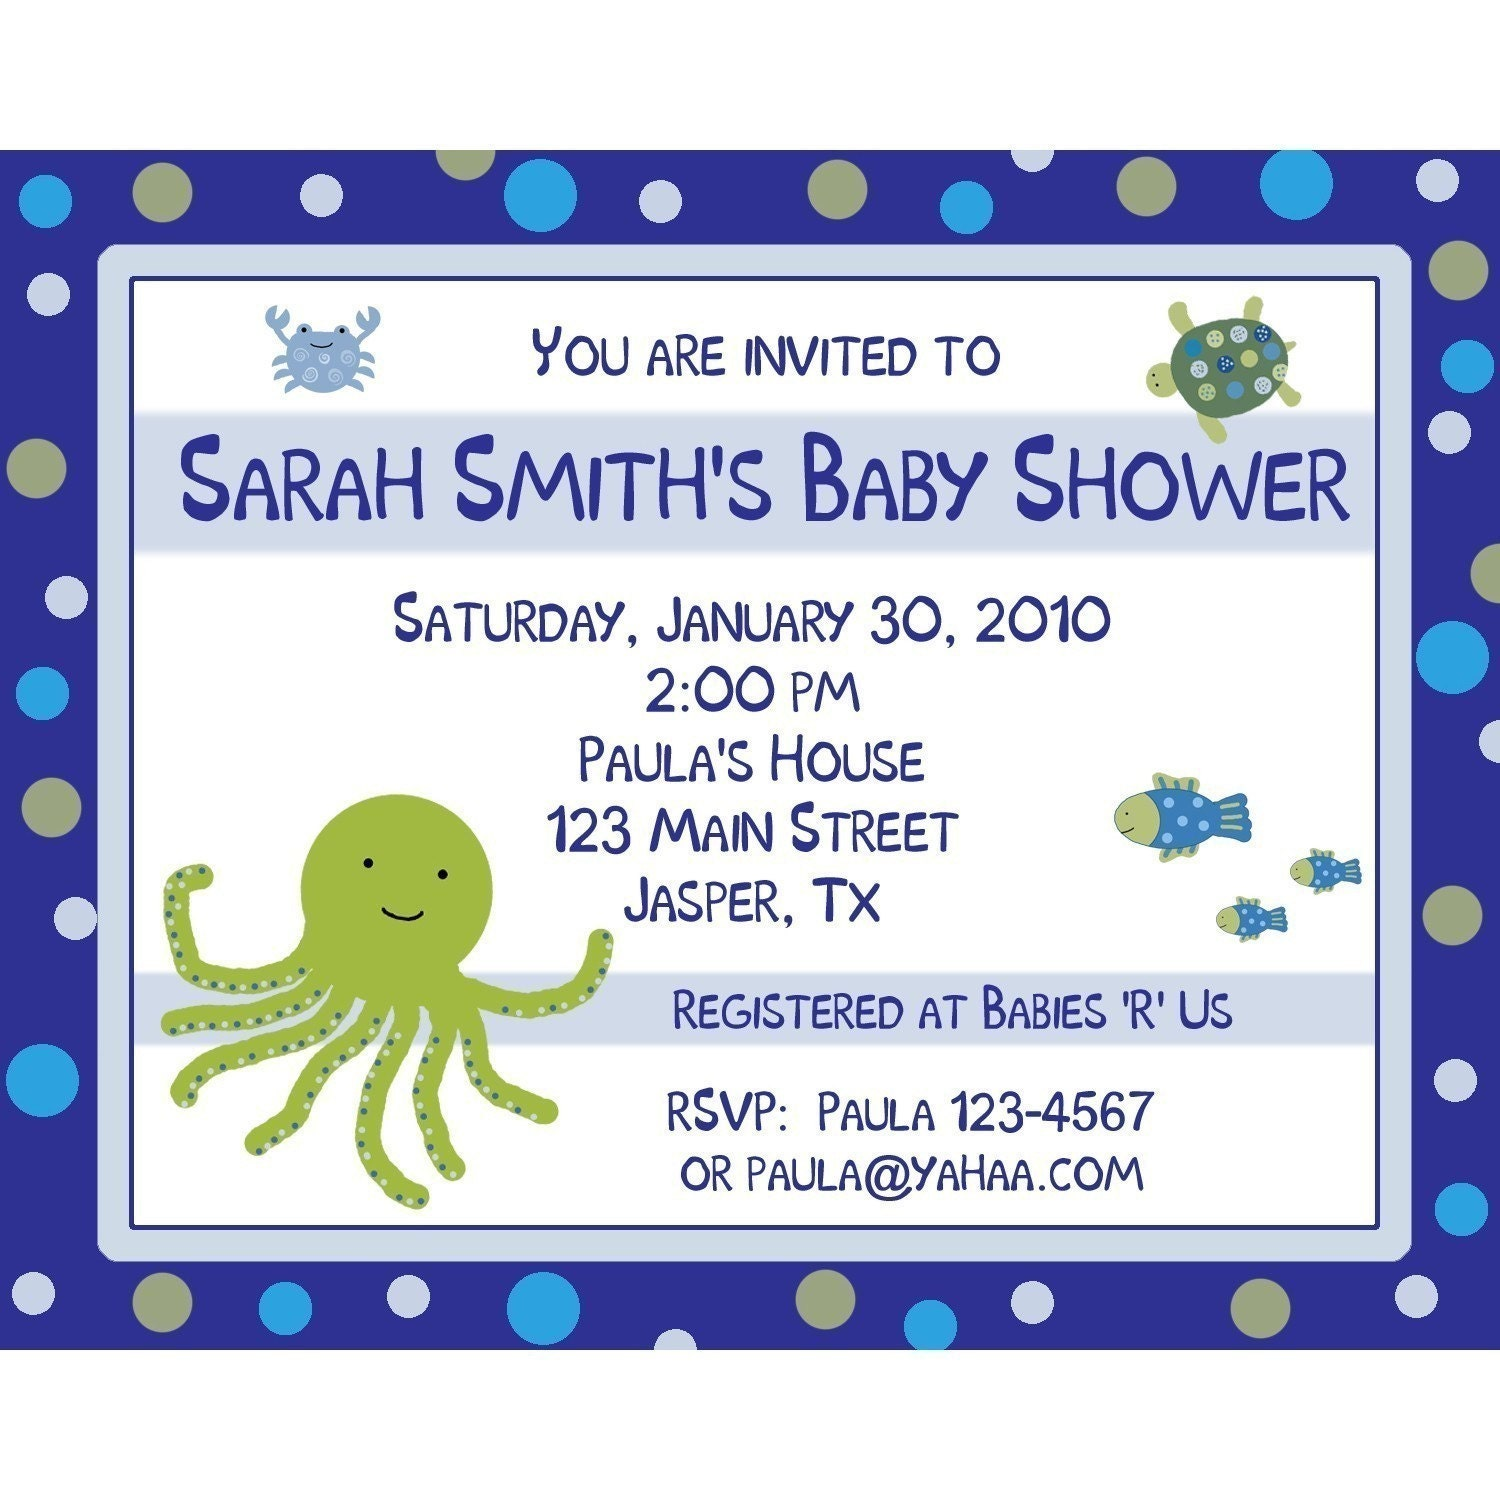 20 baby shower invitations under the sea by partyplace on etsy